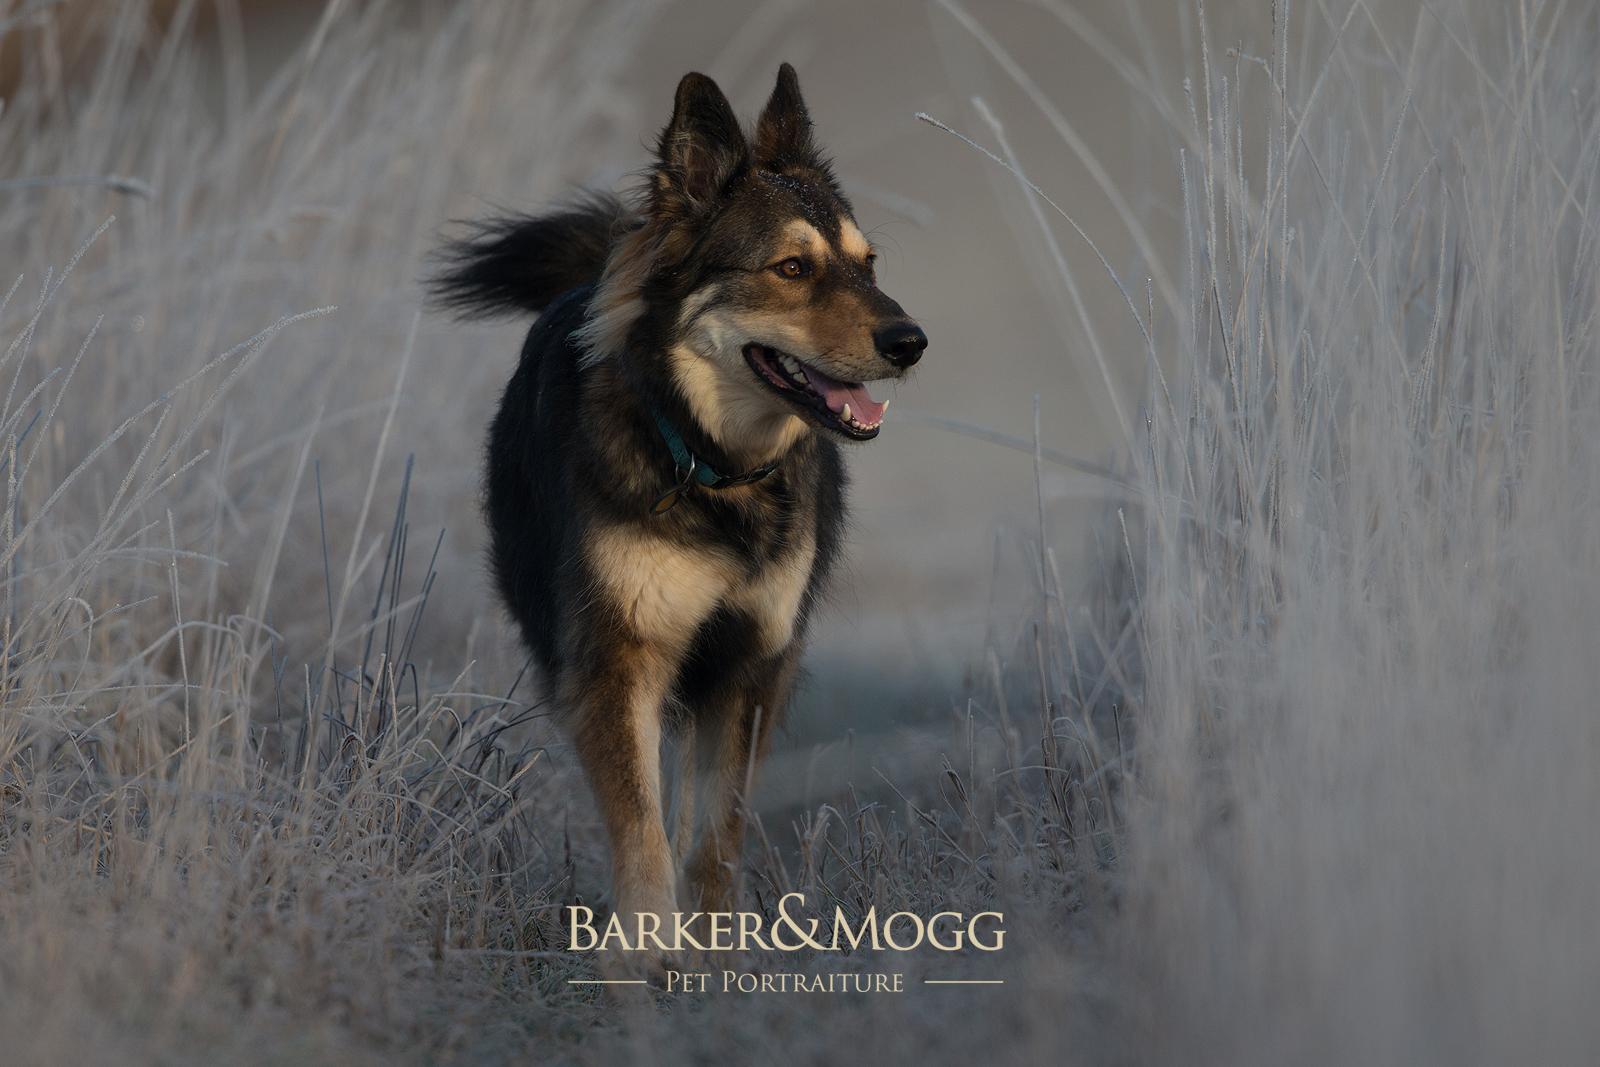 Walkies Session £125 - • We meet at a location, perhaps your favourite walk, or we can suggest a good location near Barker&Mogg HQ in Witney, Oxfordshire. • 1 - 2 hour session.• Ten Professionally edited photographs.• Provided via digital download.*